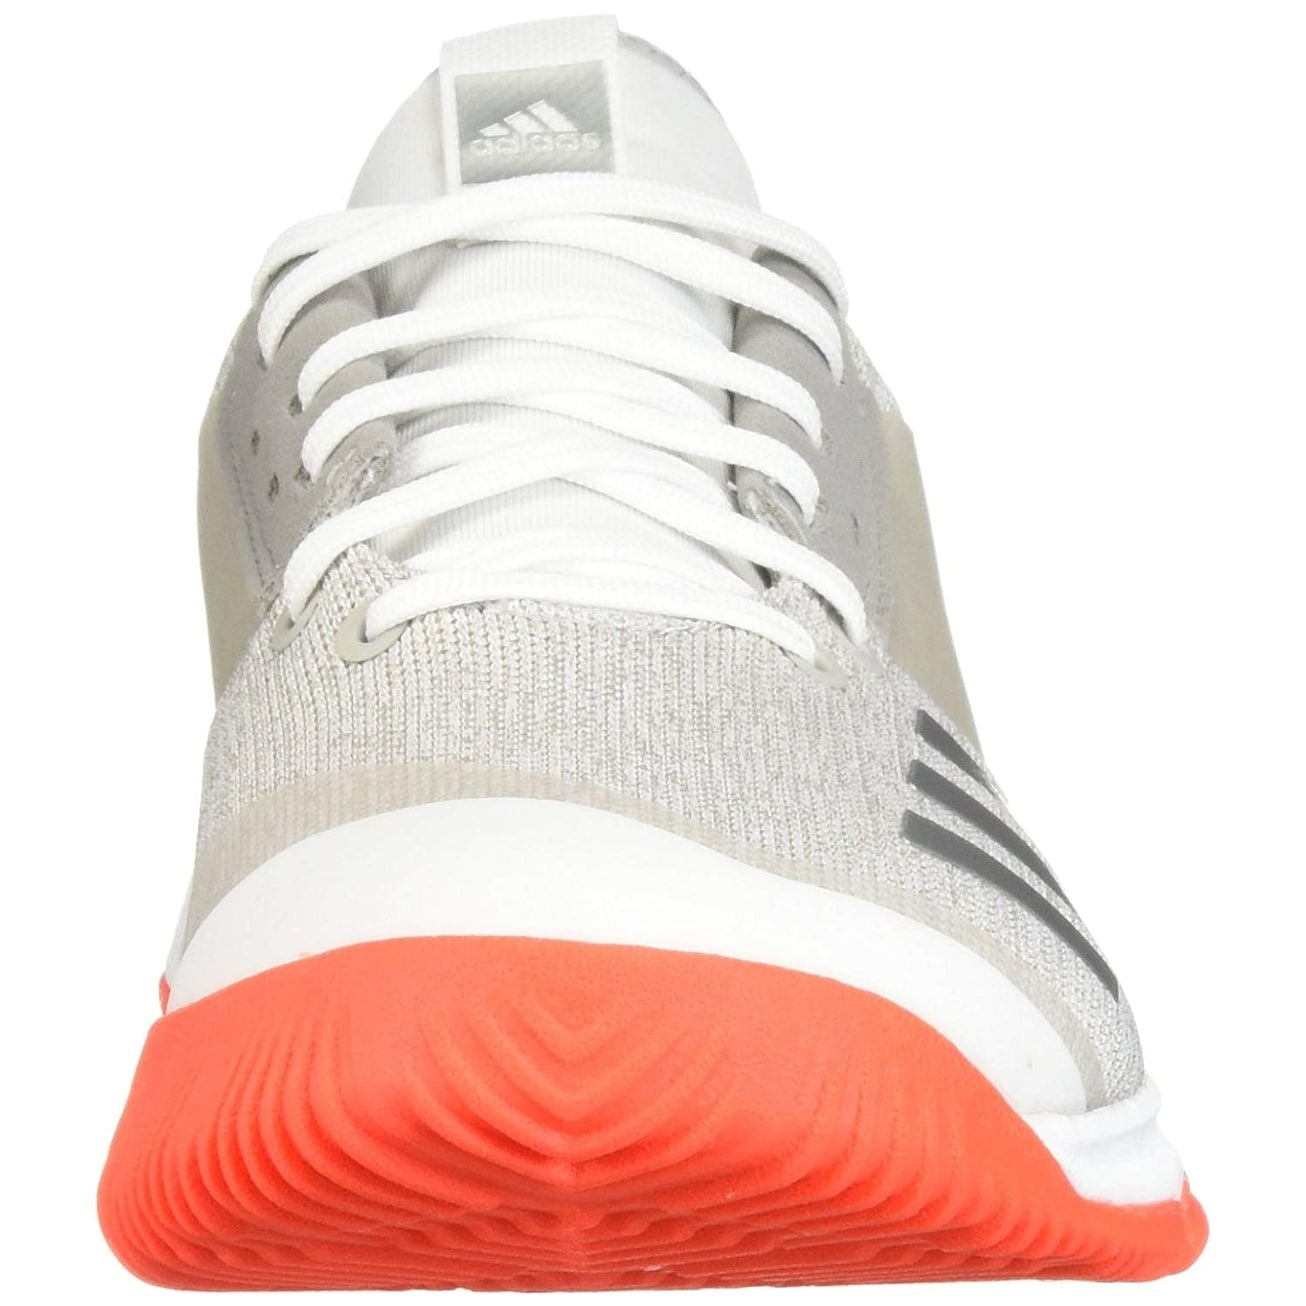 Shop adidas Women s Crazyflight Team Volleyball Shoe - Free Shipping On  Orders Over  45 - Overstock - 25686566 276ba88b1